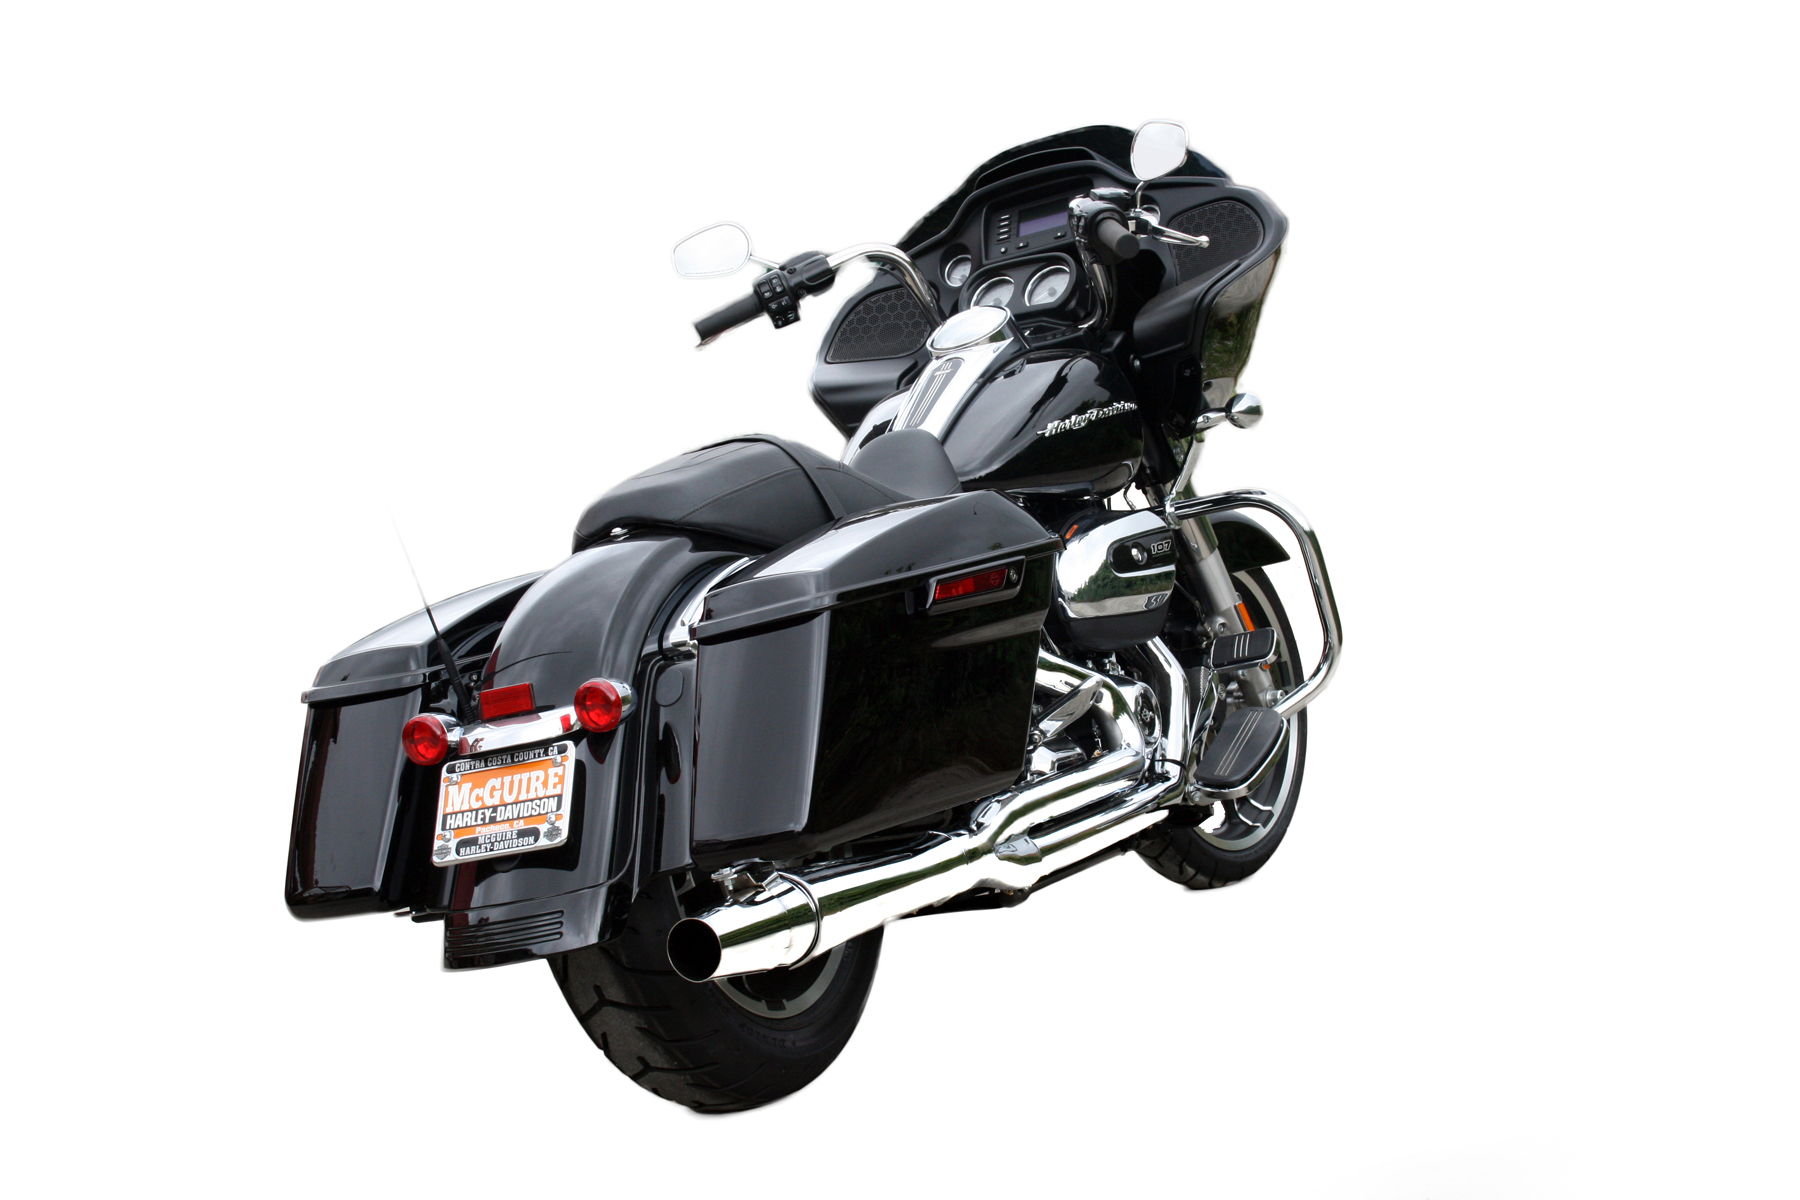 X-series Exhaust for Harley